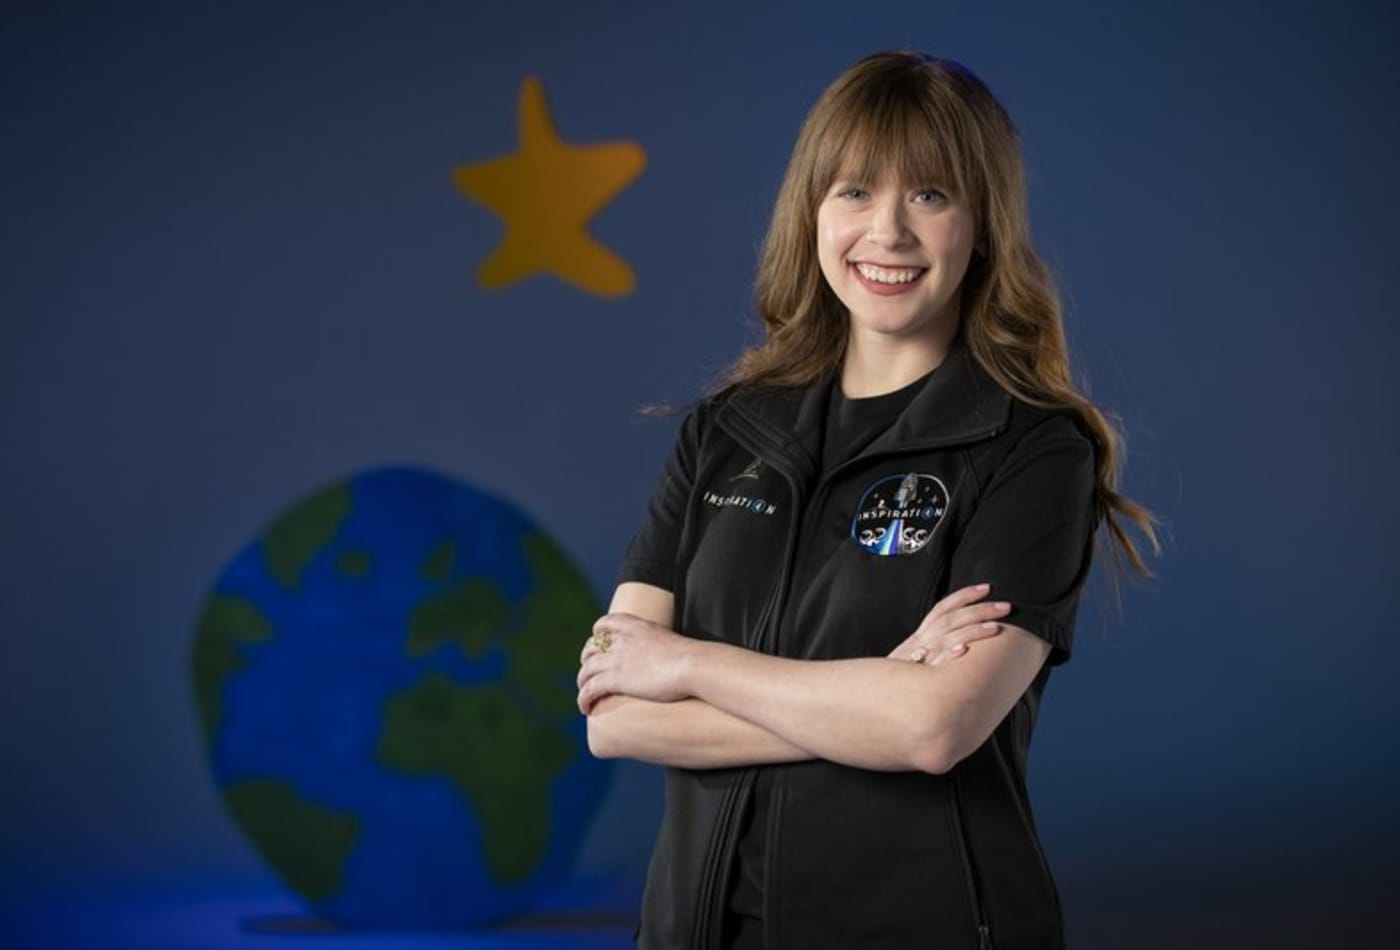 Meet Hayley Arceneaux, 29-year-old cancer survivor set to become youngest American in space